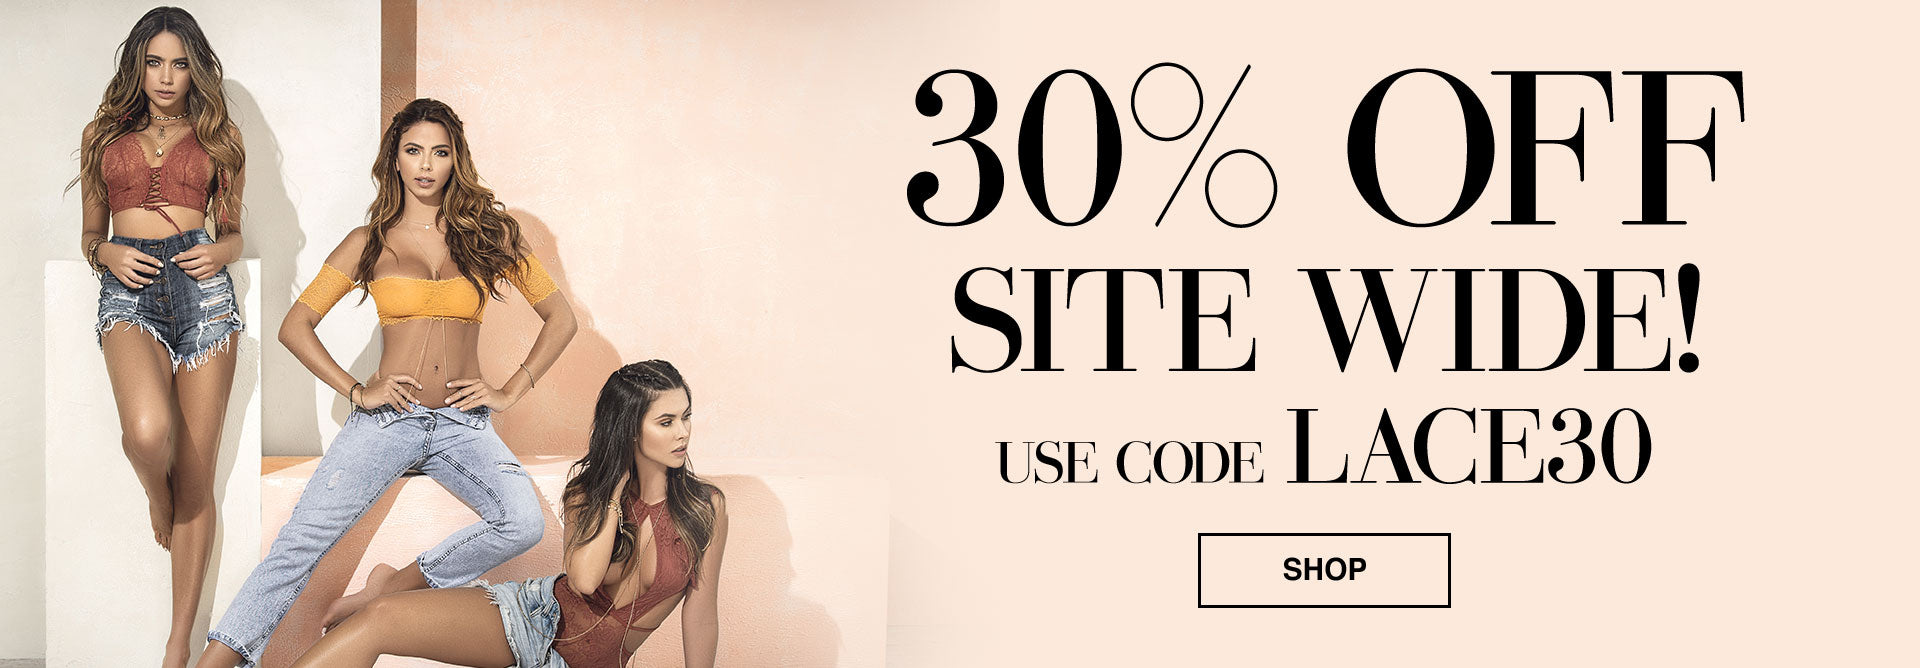 30% Off Site Wide - Use Code LACE30